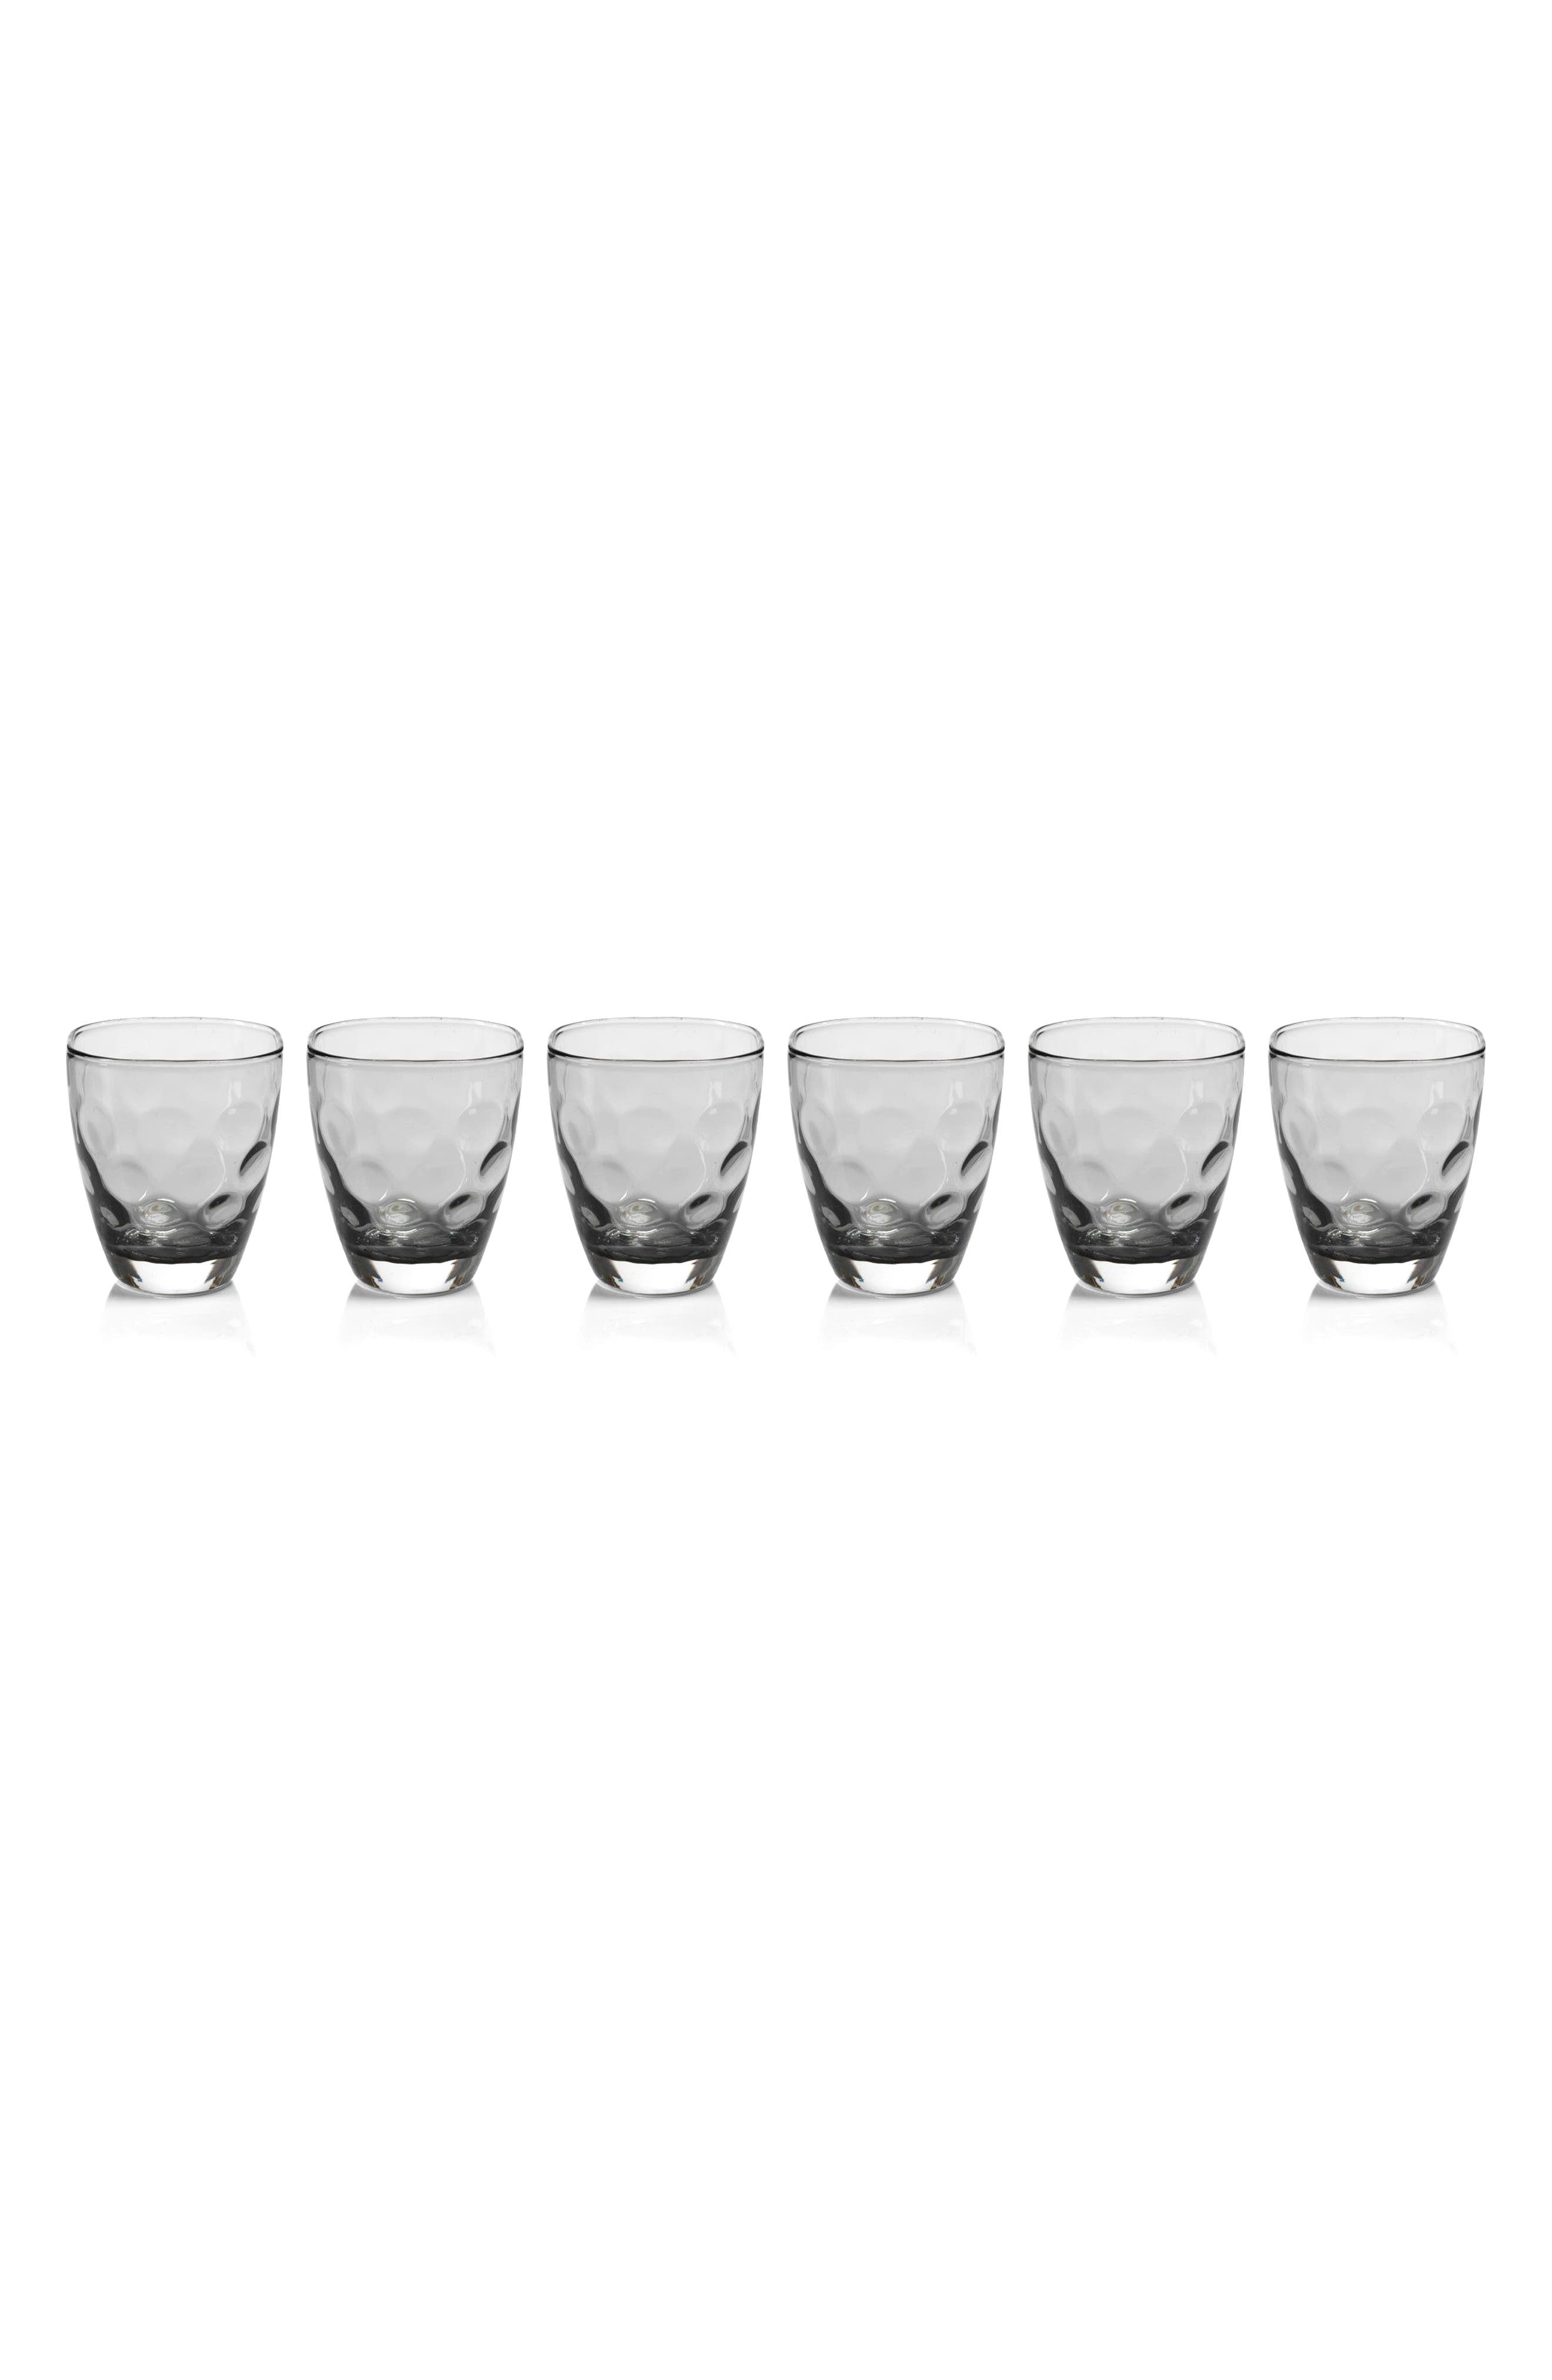 Dimpled Set of 6 Double Old Fashioned Glasses,                             Main thumbnail 1, color,                             Clear/ Grey